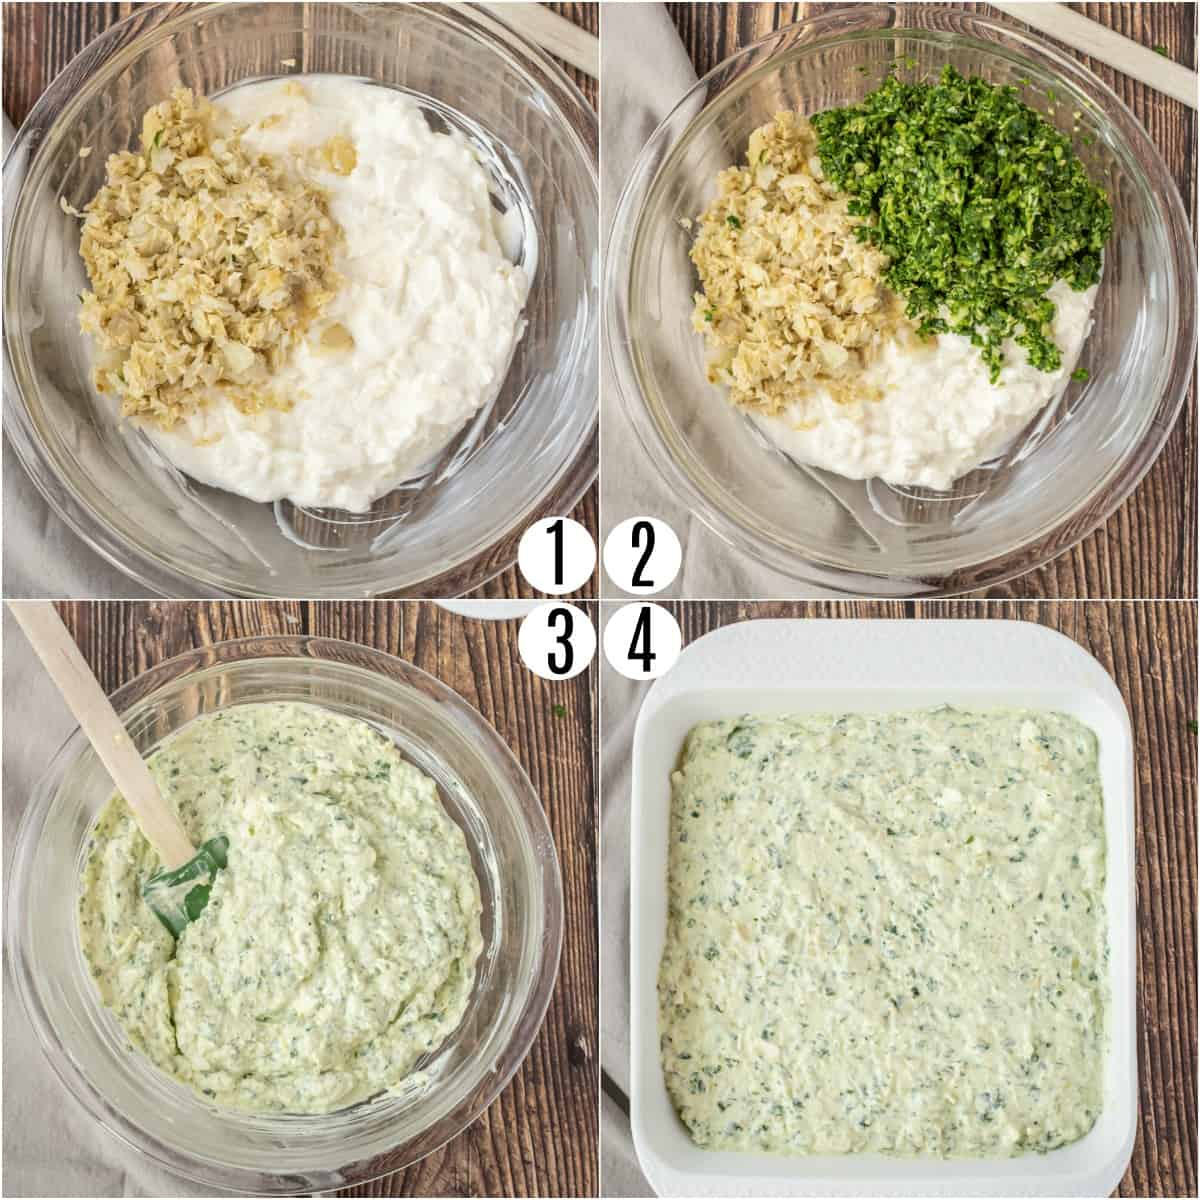 Step by step photos showing how to make spinach artichoke dip.